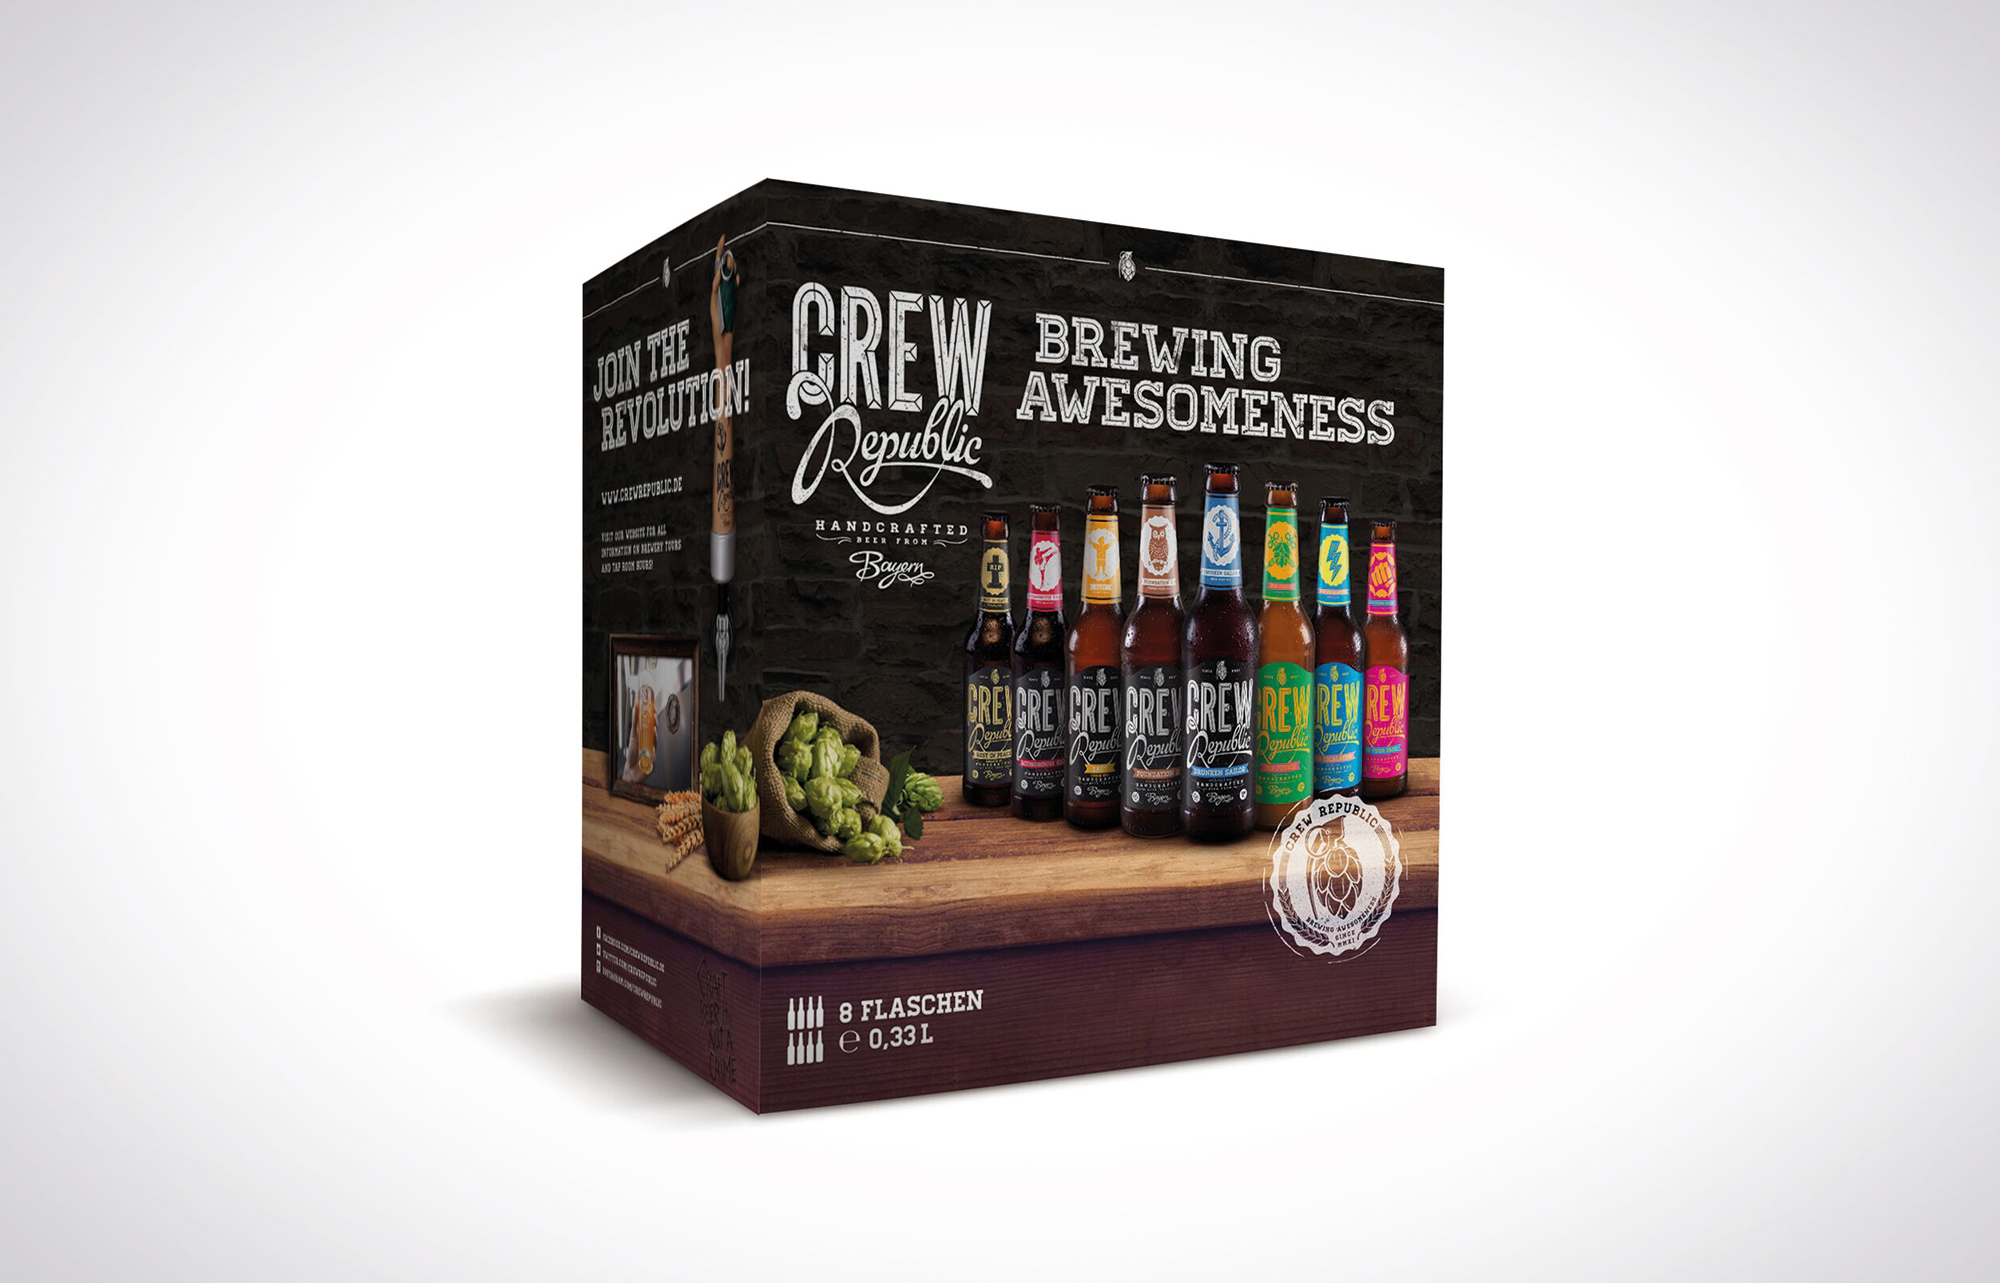 Crew_BREWING-AWESOMENESS